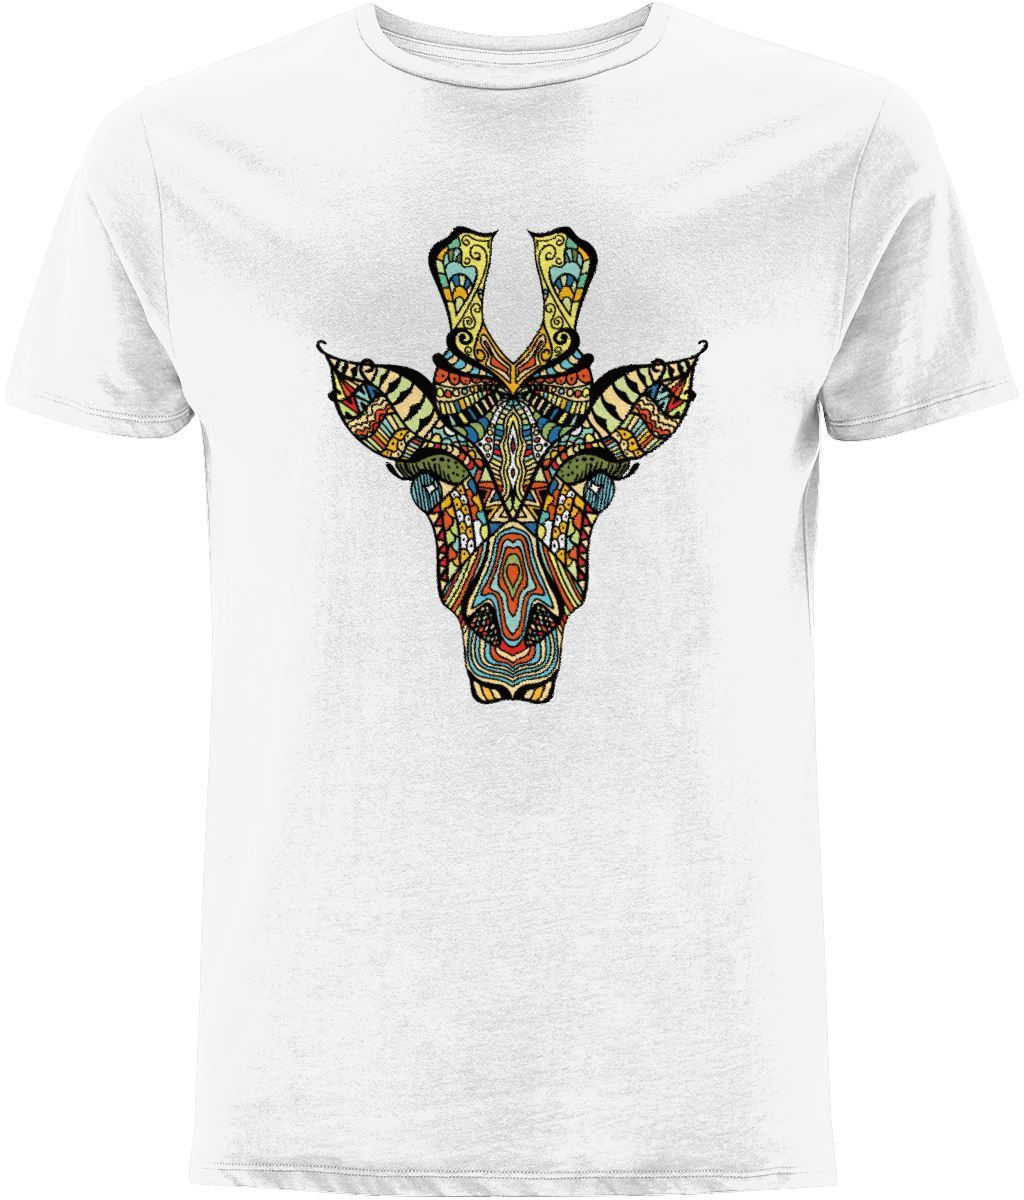 Ethnic Giraffe T-shirt Clothing IndianBelieves White X-Small